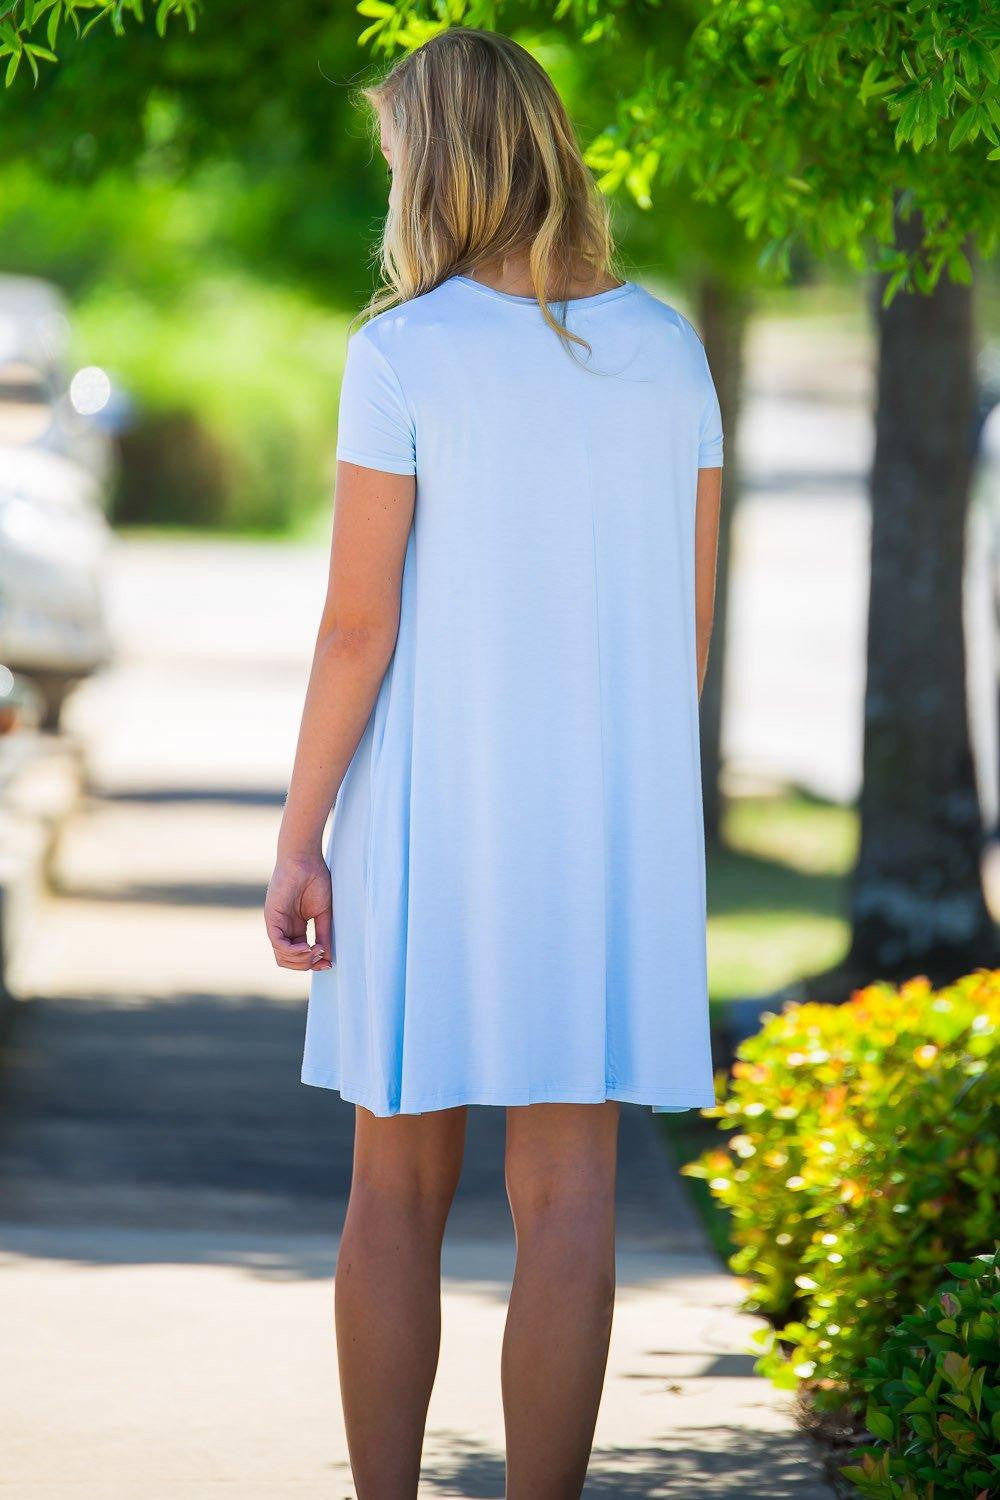 Piko Short Sleeve Swing Dress-Light Blue - Piko Clothing - 2